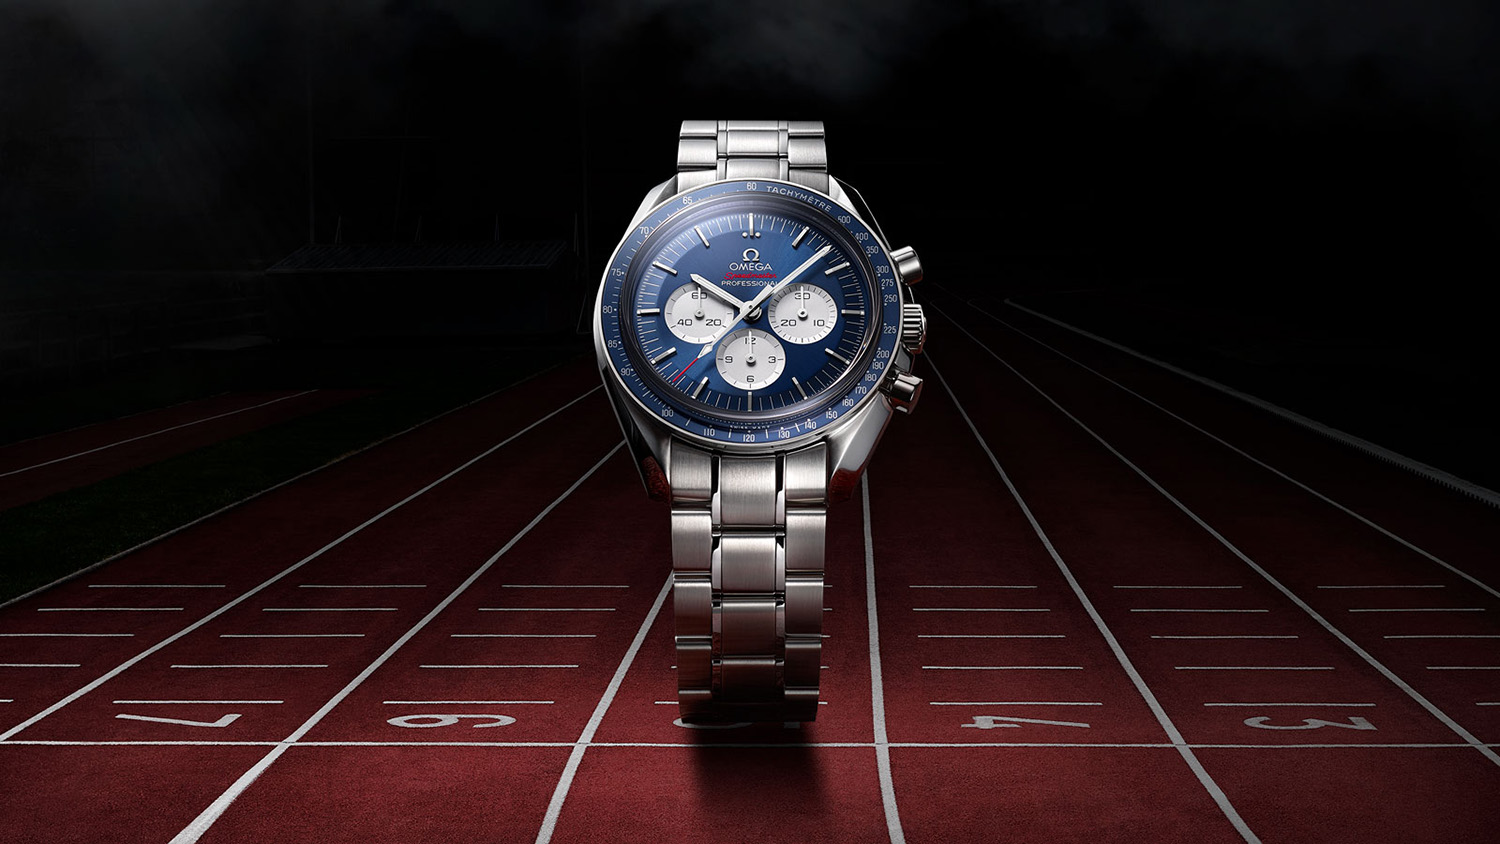 omega-specialities-olympic-games-collection-52230423003001-prlax-desktop